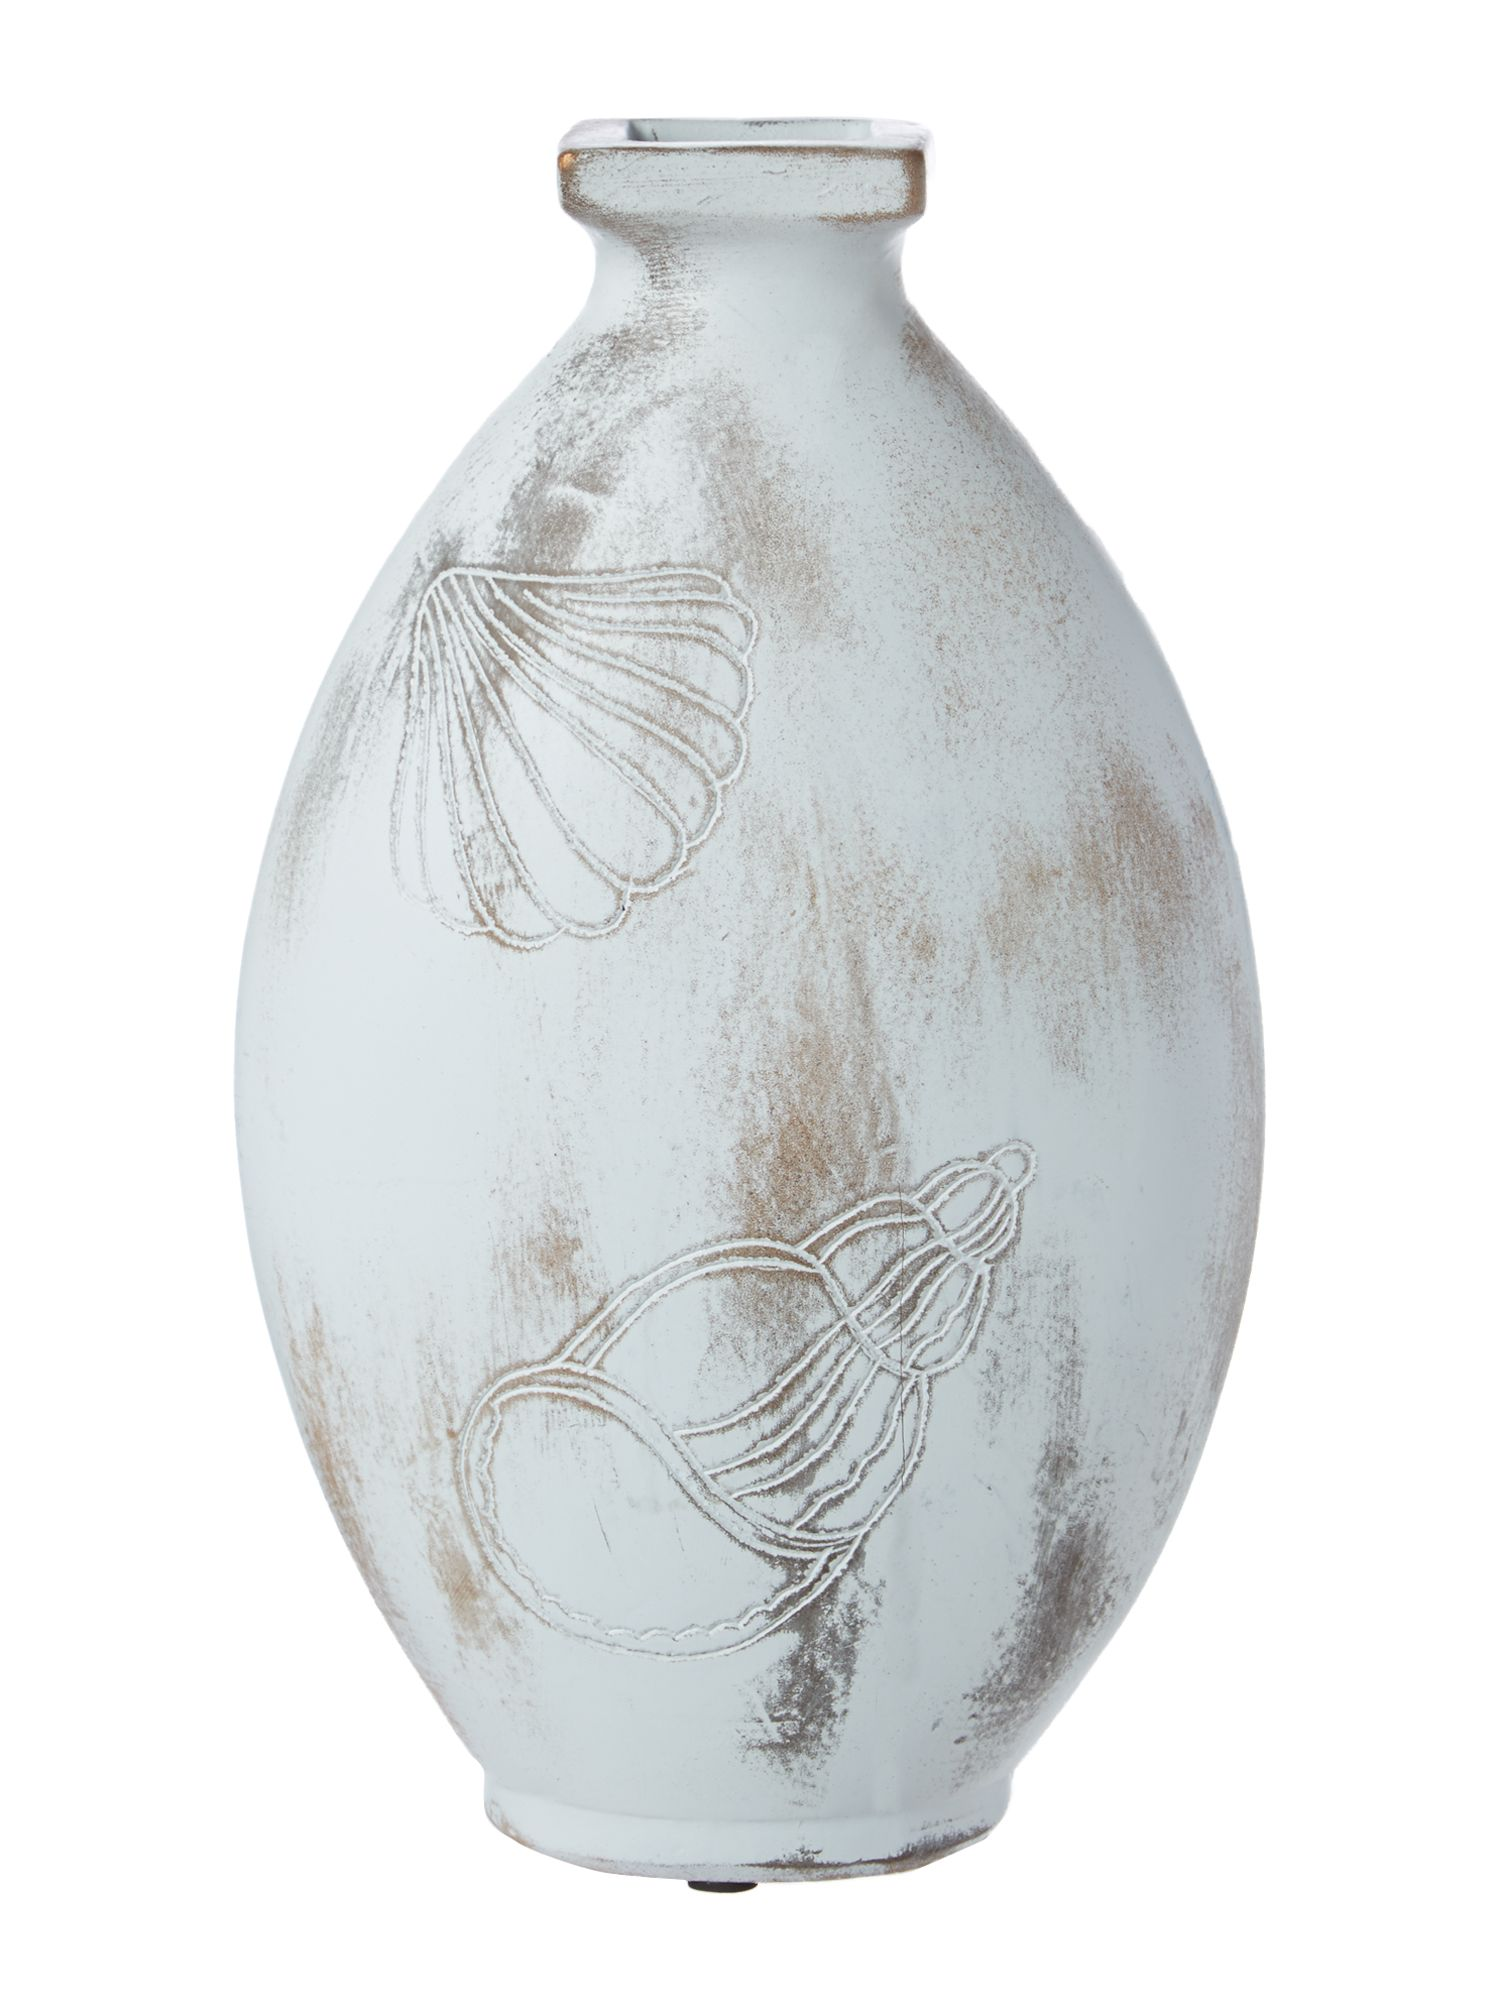 Seashell ceramic vase